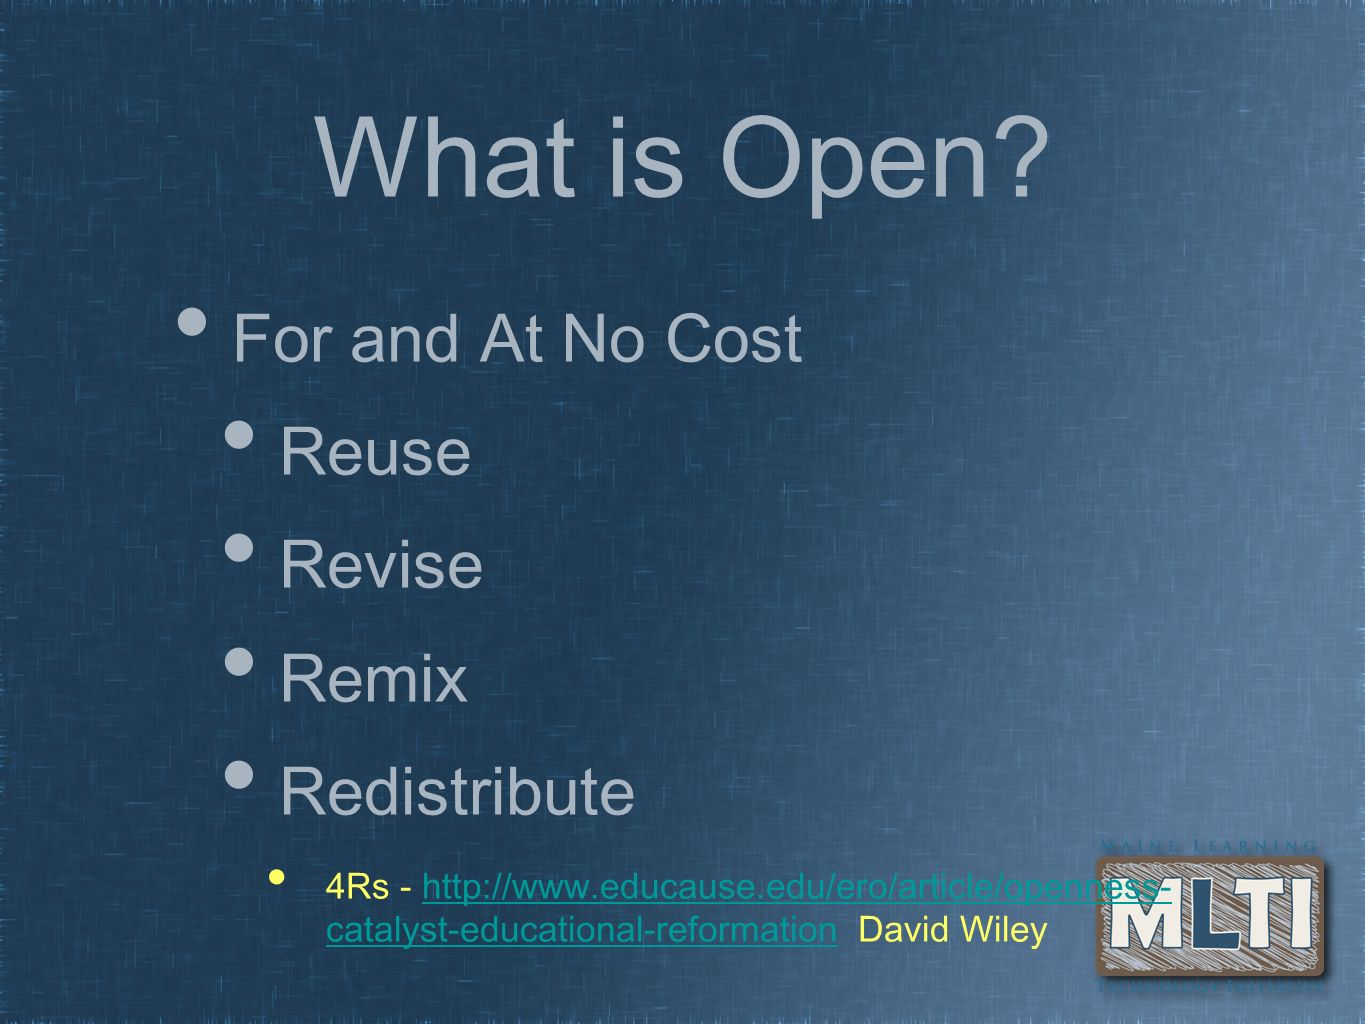 What is Open? For and At No Cost Reuse Revise Remix Redistribute 4Rs - http://www.educause.edu/ero/article/openness- catalyst-educational-reformation